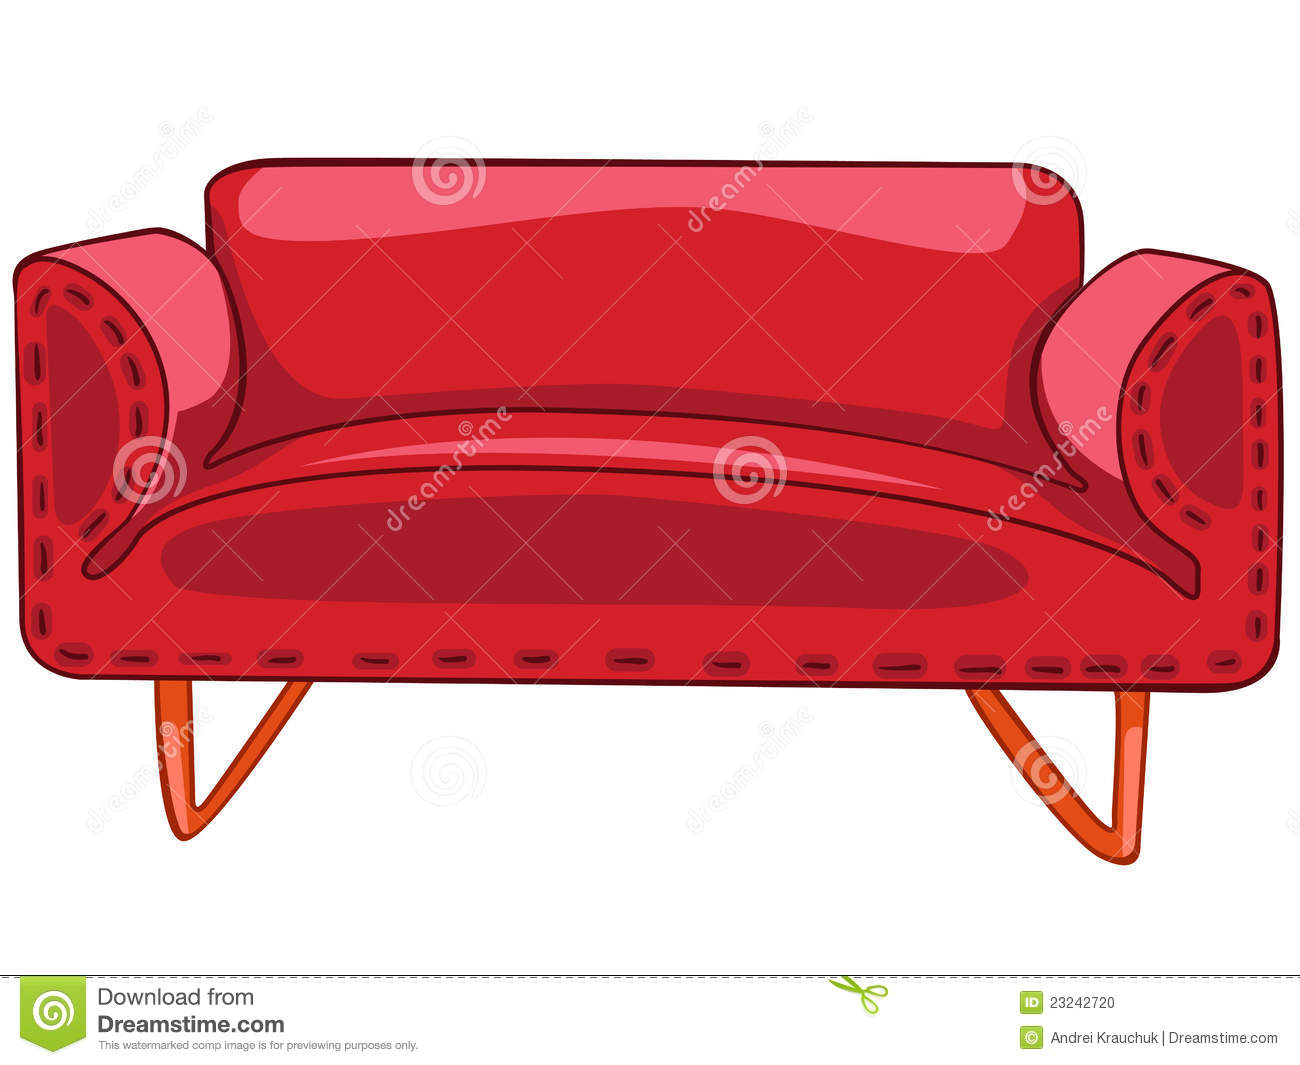 Cartoon Home Furniture Sofa Stock Photo - Image: 23242720